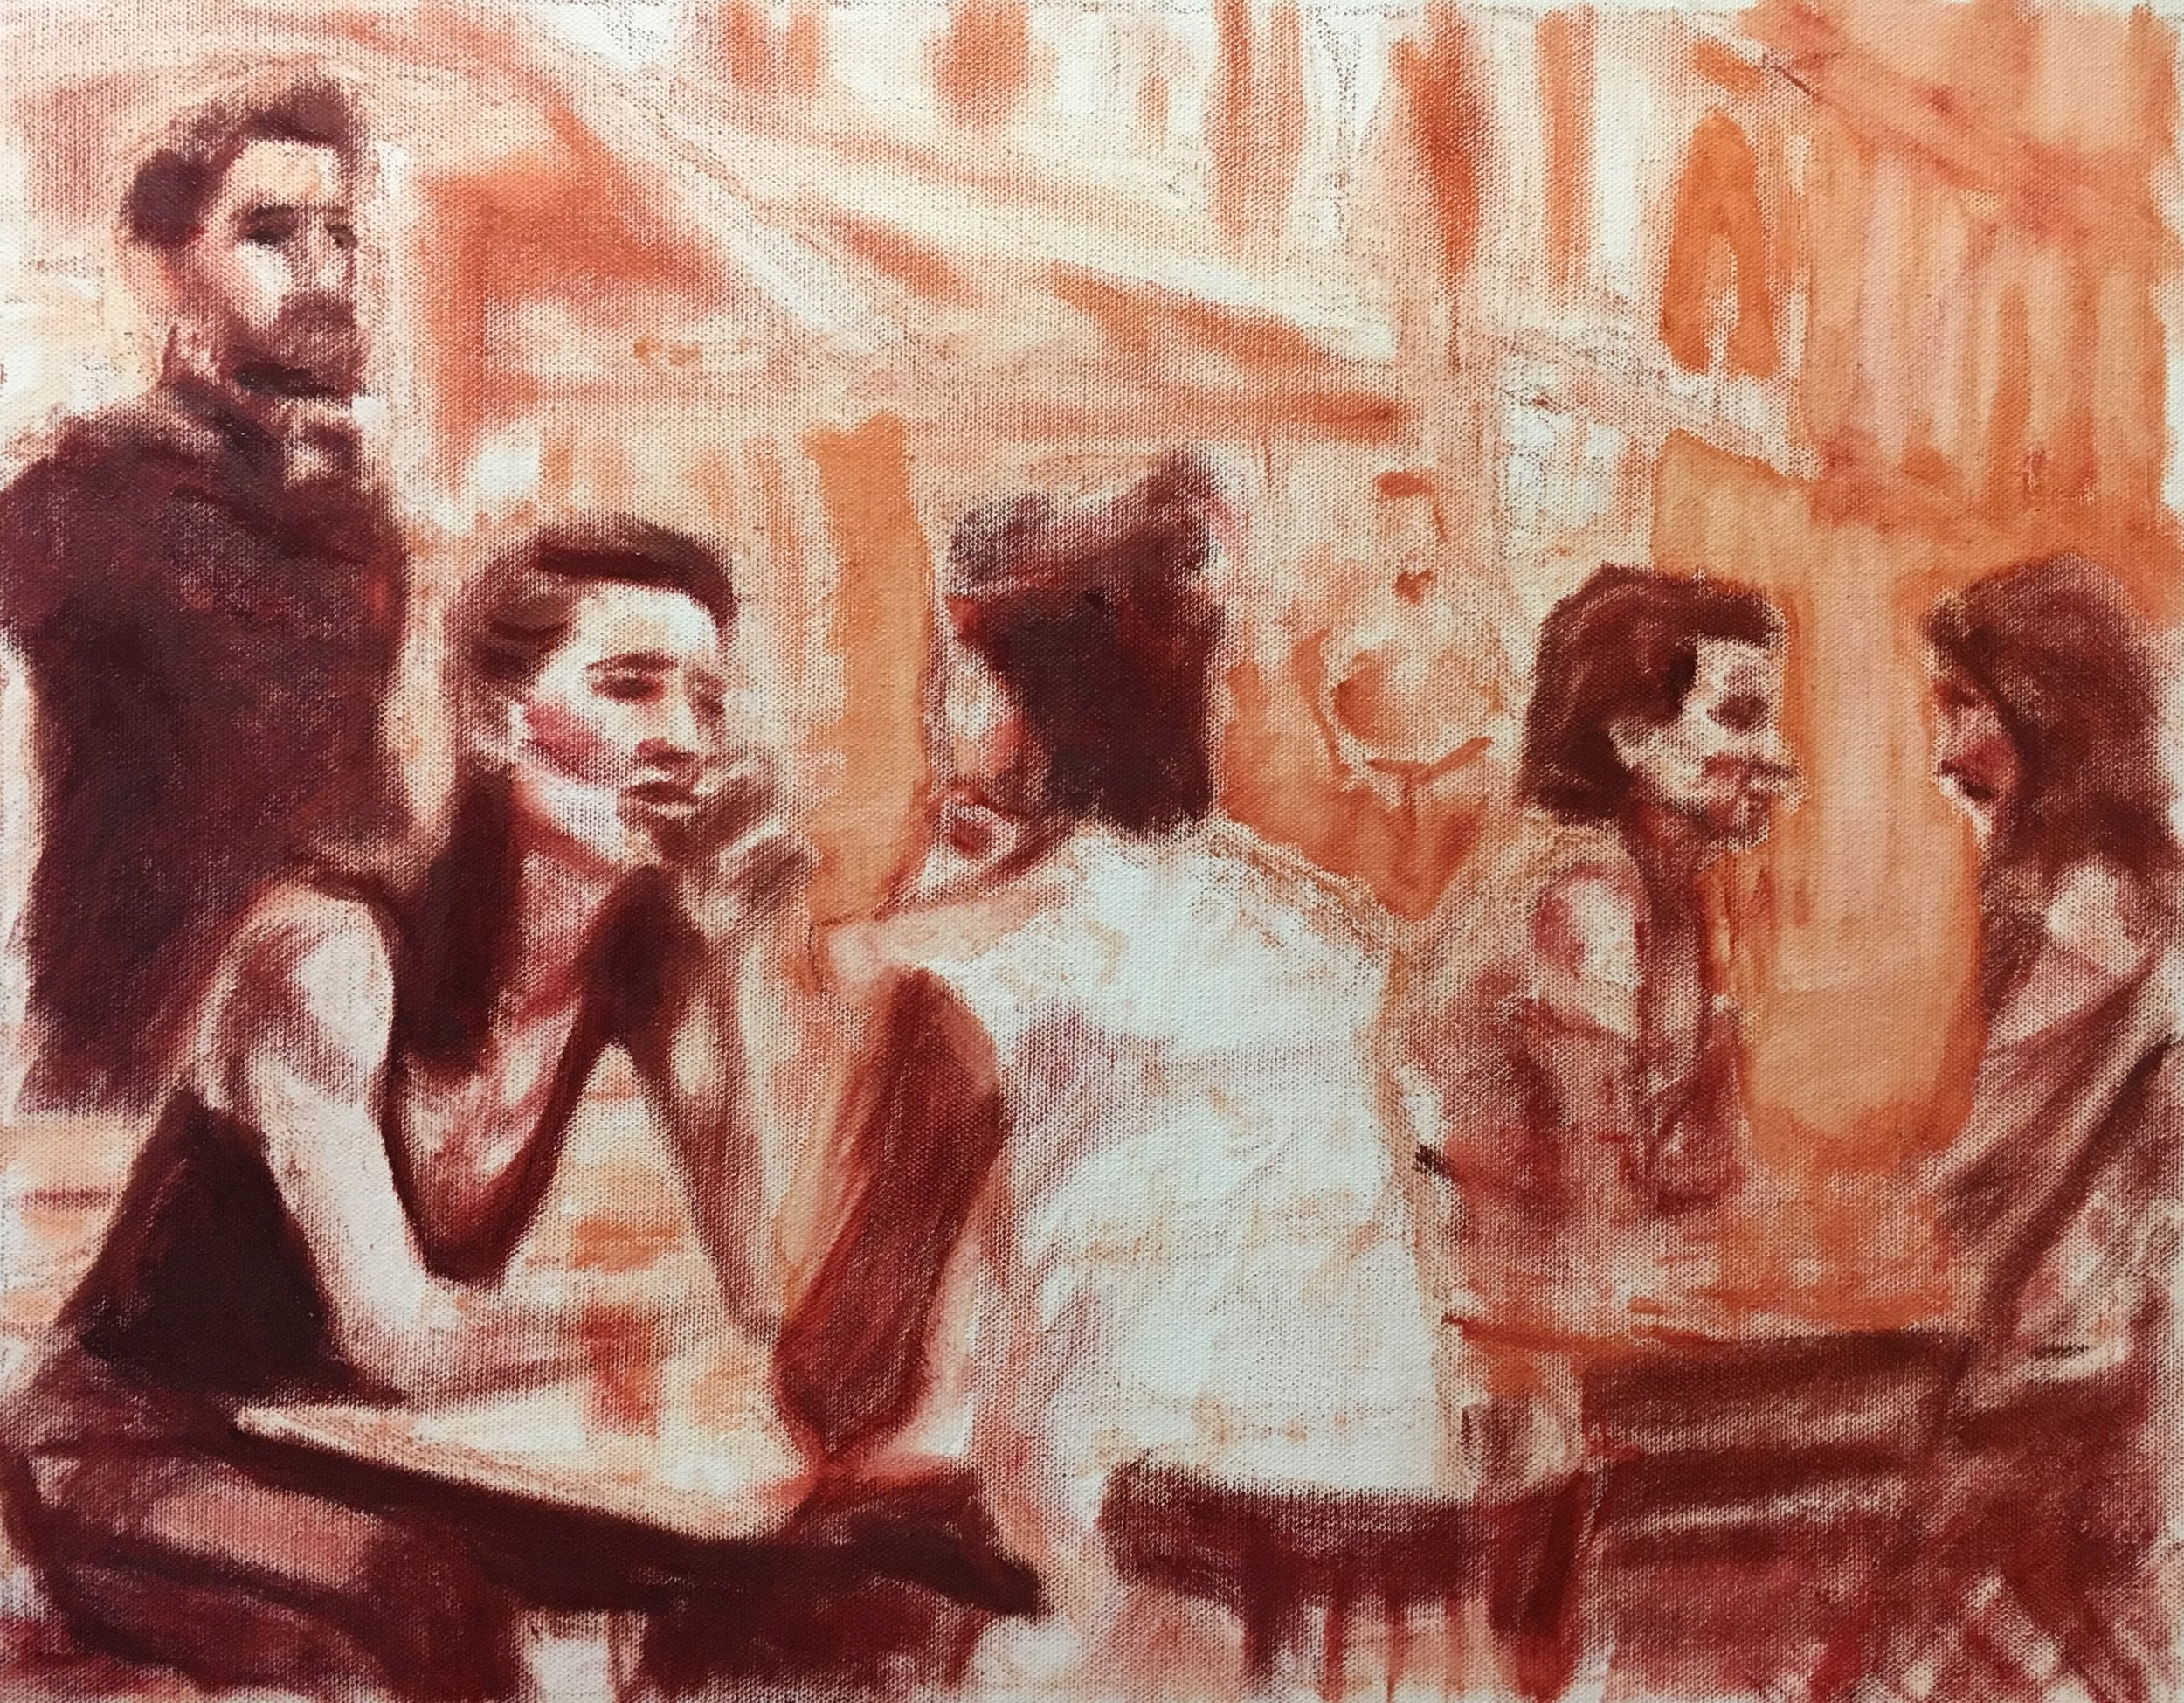 Underpainting (09 April 2019)